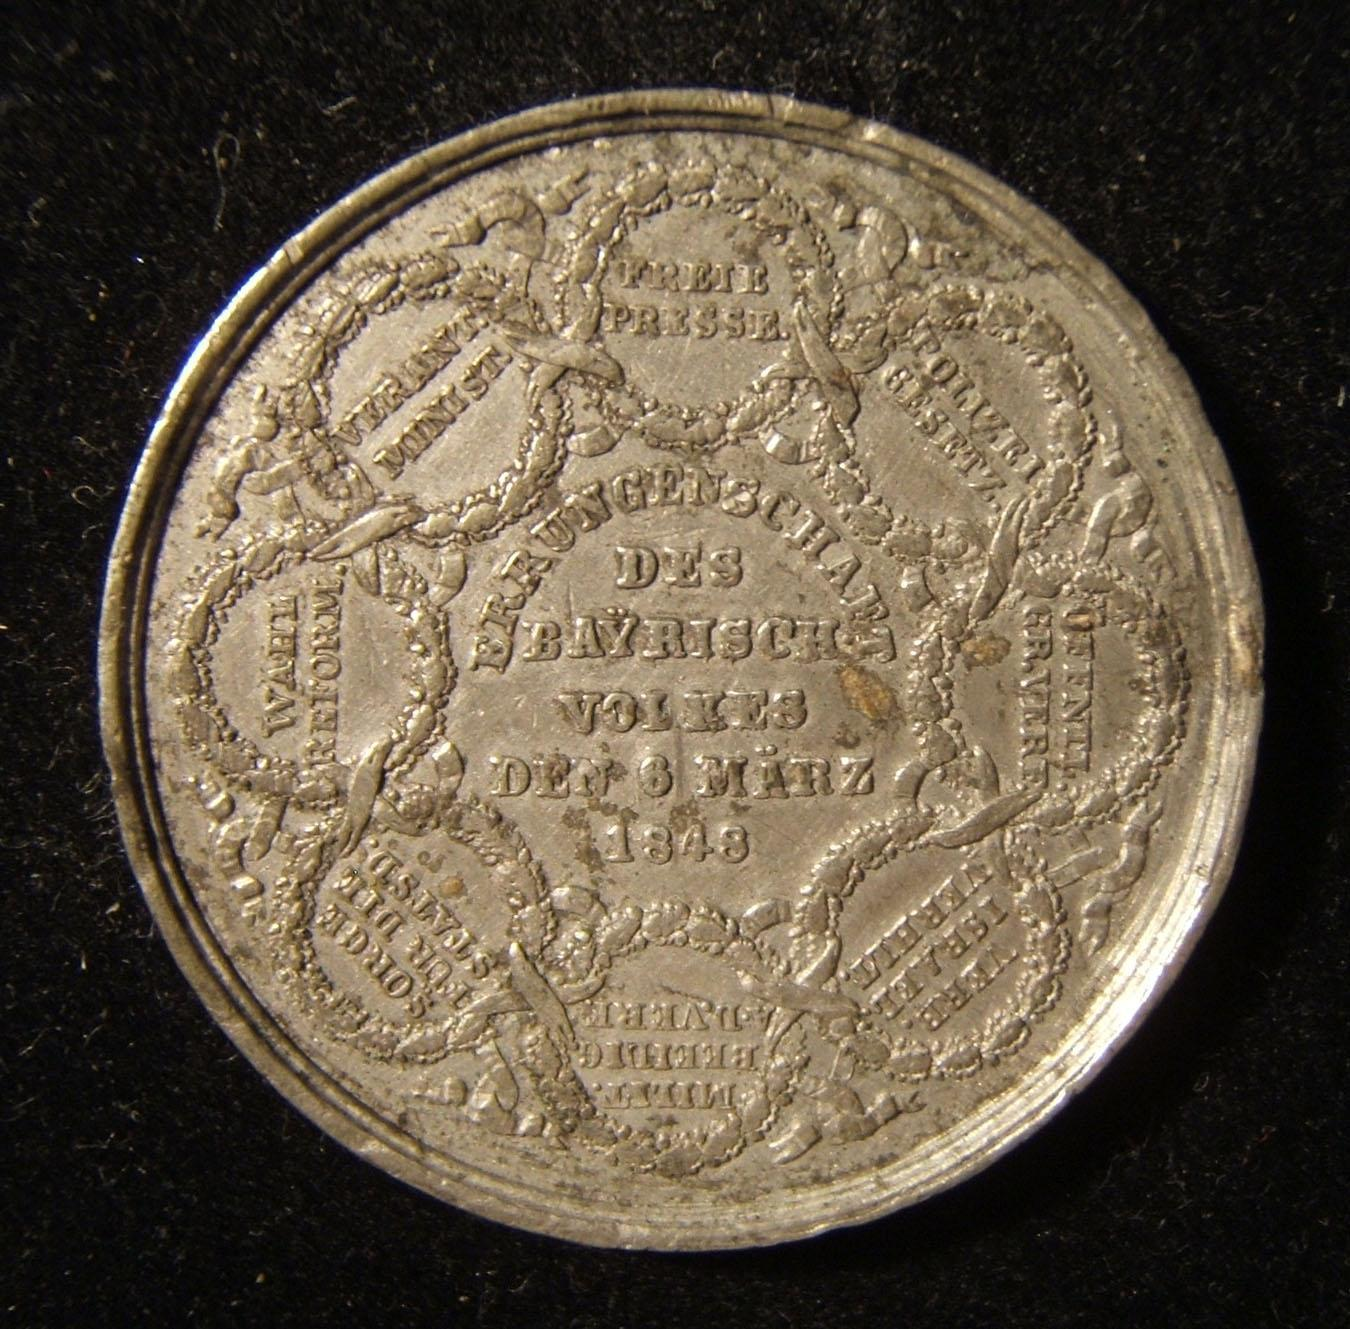 Germany: Commemoration of German Revolution, 1848; by Drentwett; struck in tin; size: 37.5mm; weight: 16.65g. Obv.: leg.